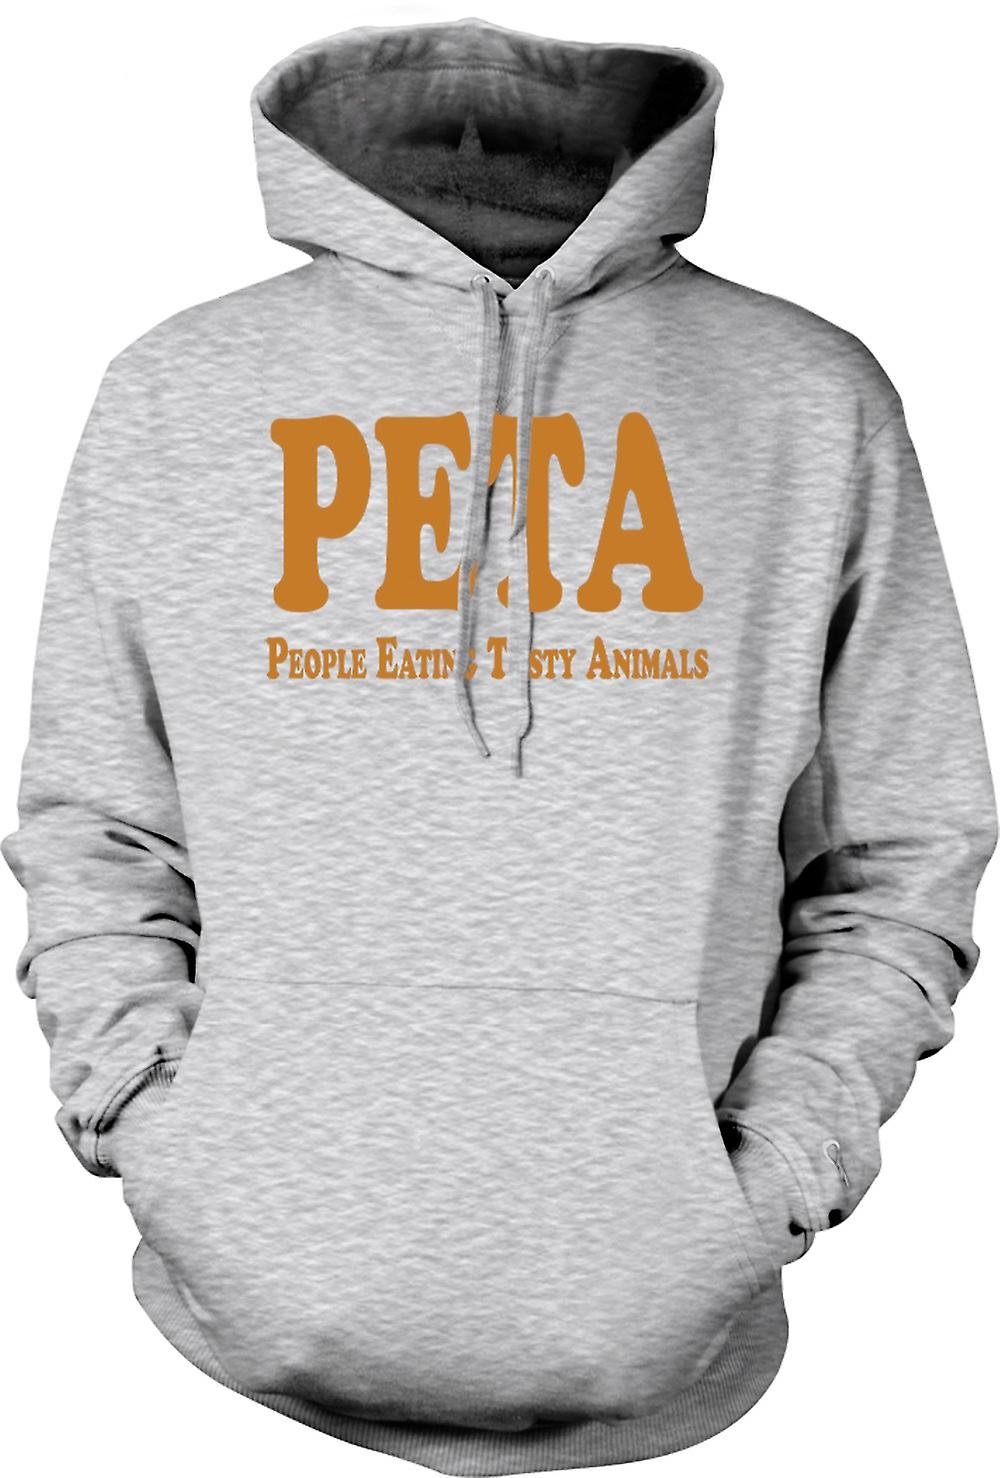 Mens Hoodie - Peta People Eating Tasty Animals - Quote